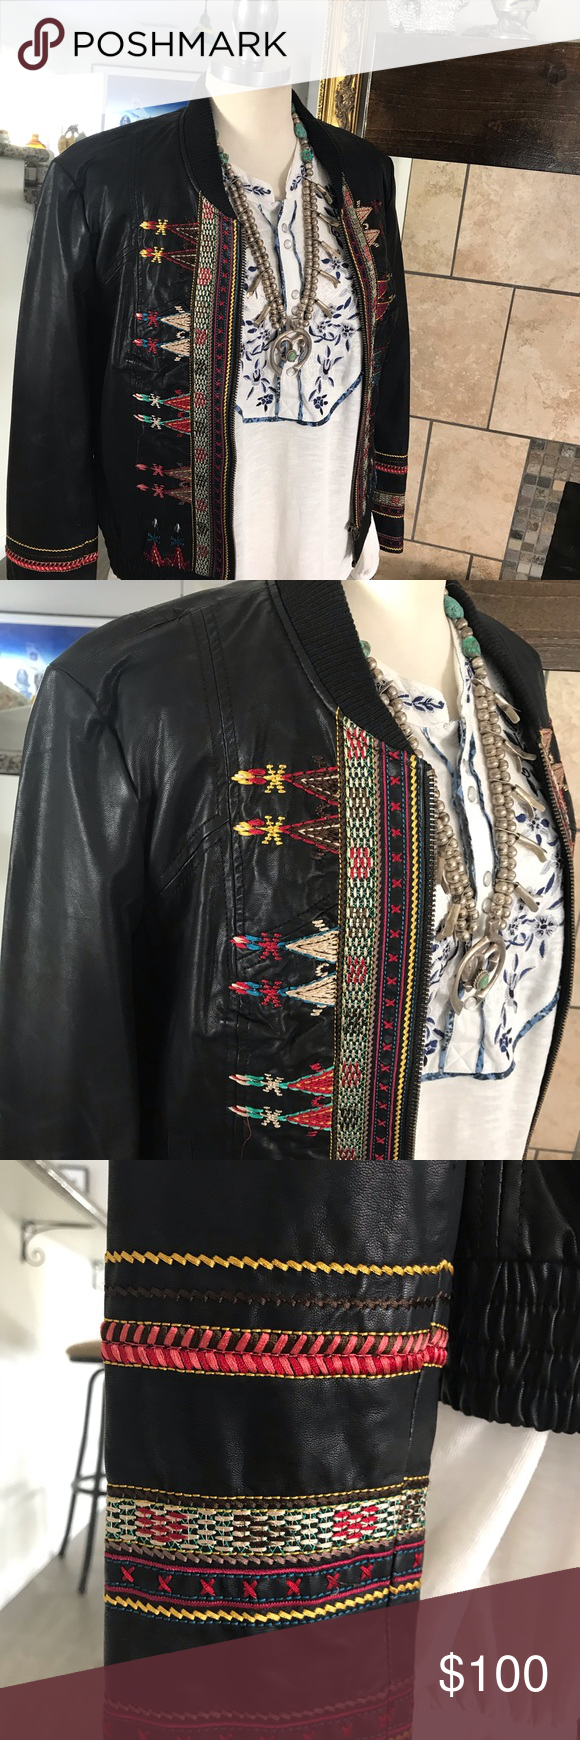 Free People Indian Print Embroidered Jacket In 2020 Embroidered Jacket Indian Prints Clothes Design